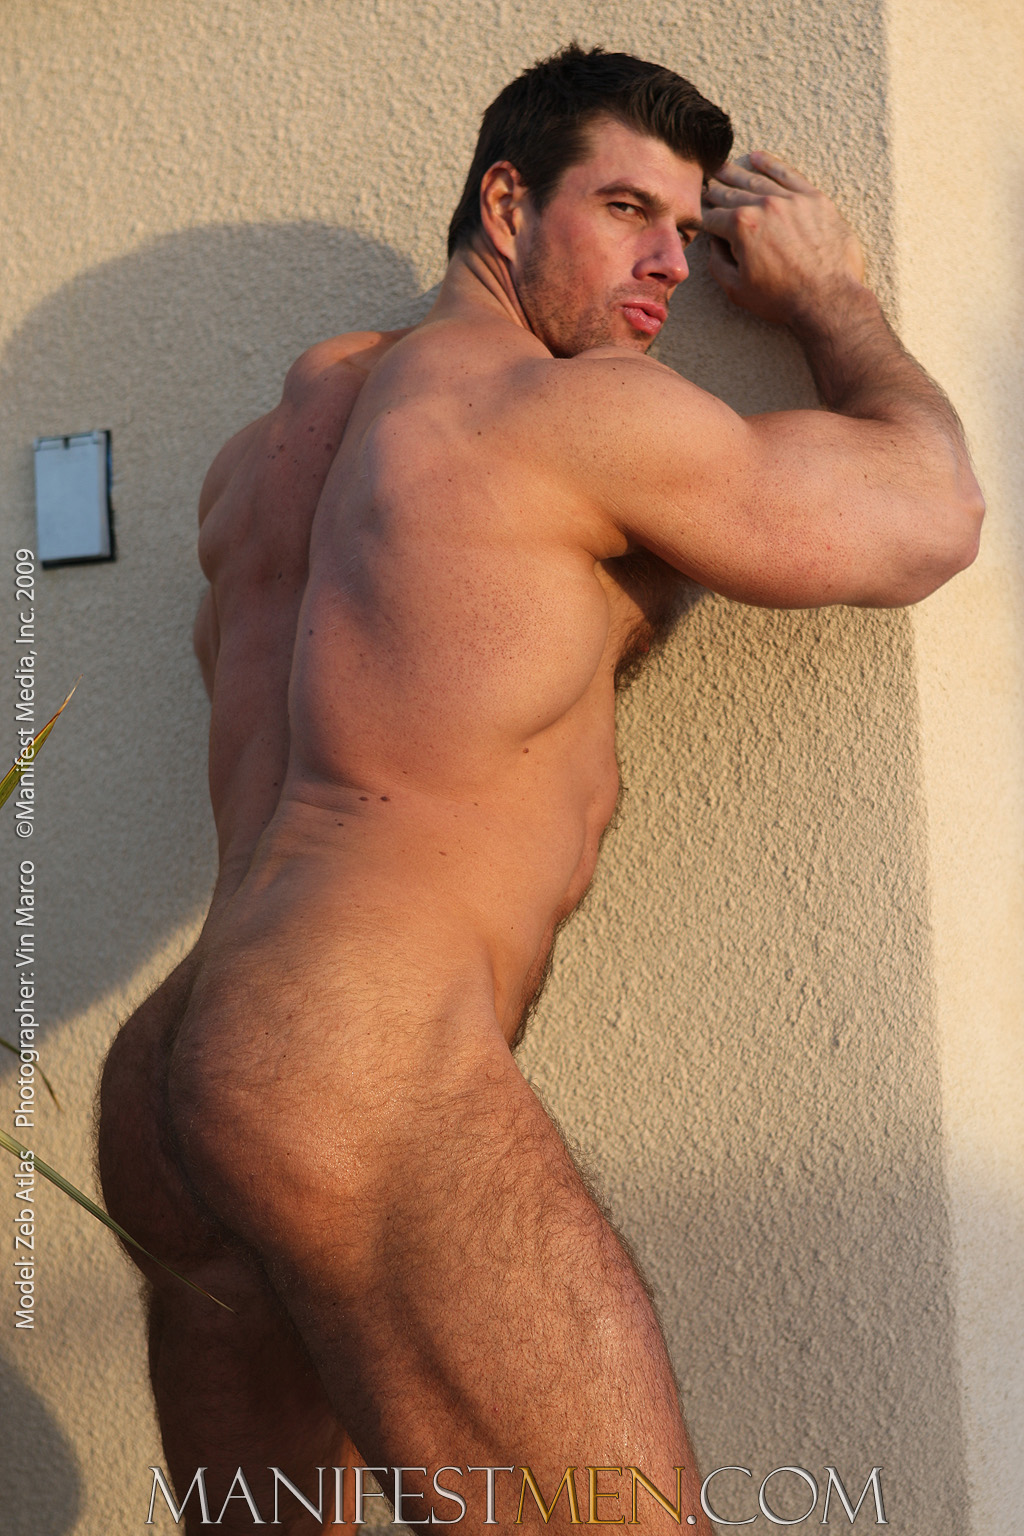 Goes nude hairy men gallery are not